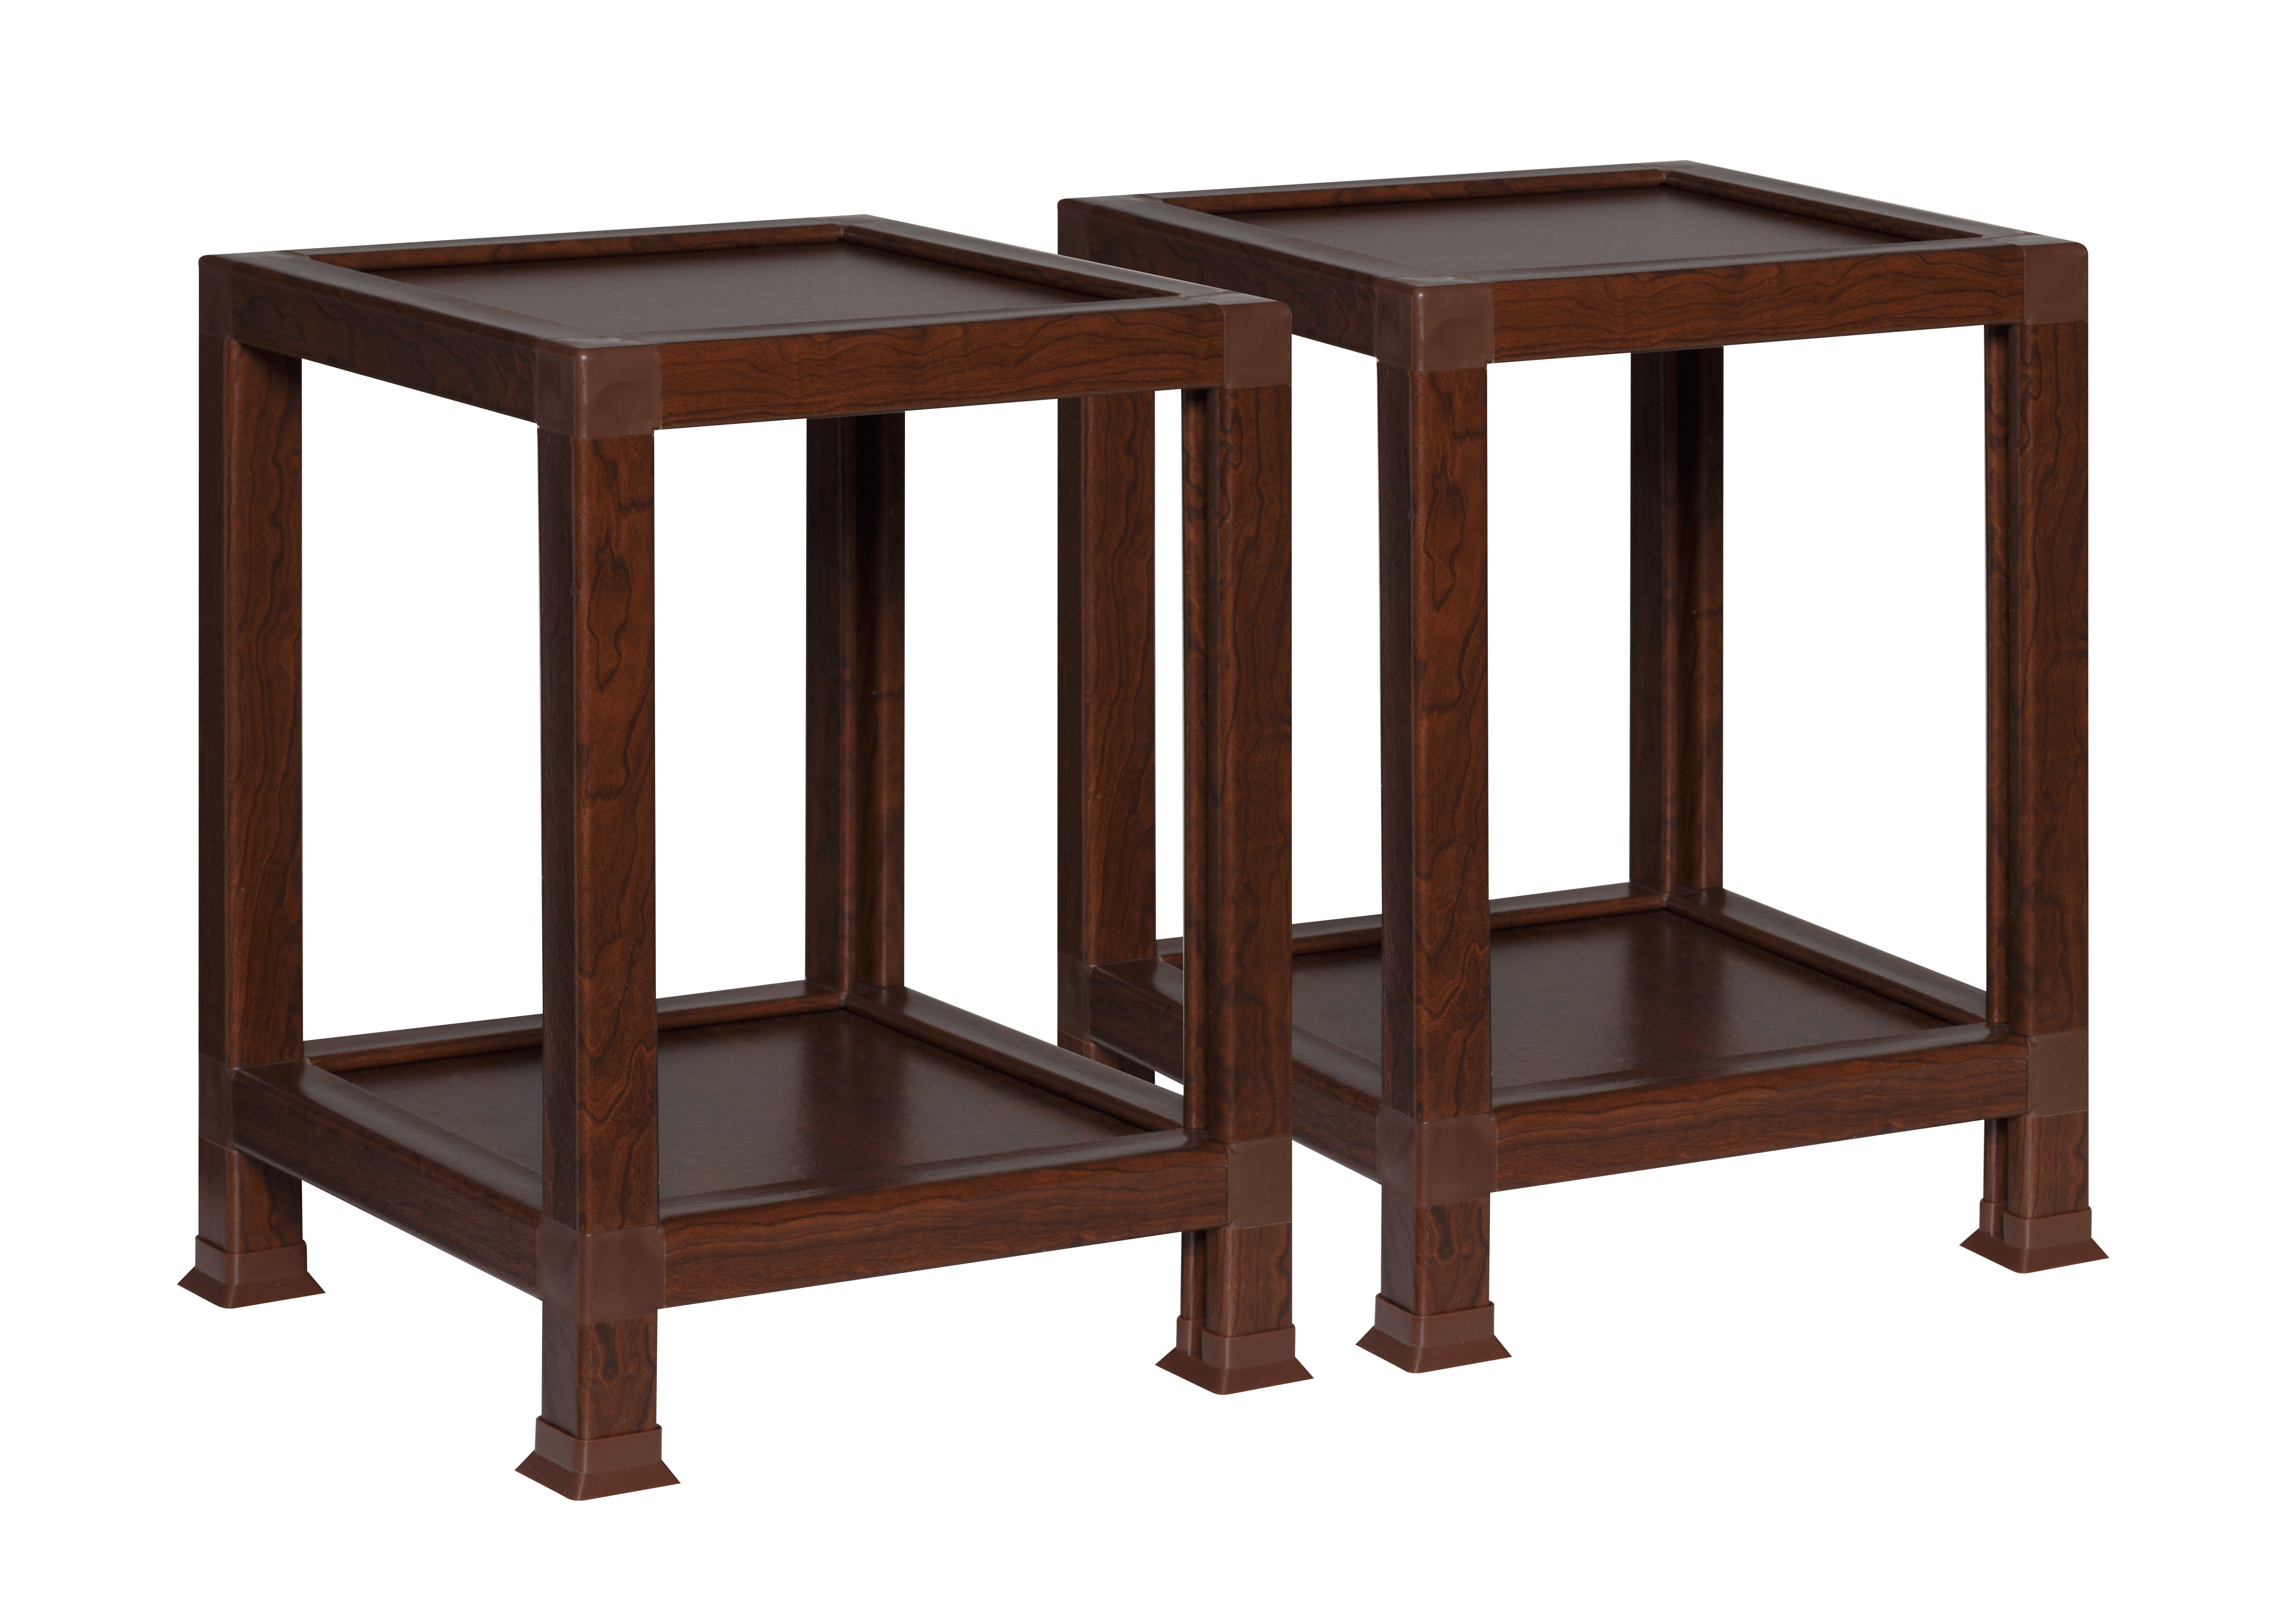 recycled paper furniture. OneSpace ECO 100% Recycled Paper End Table, Teak Furniture